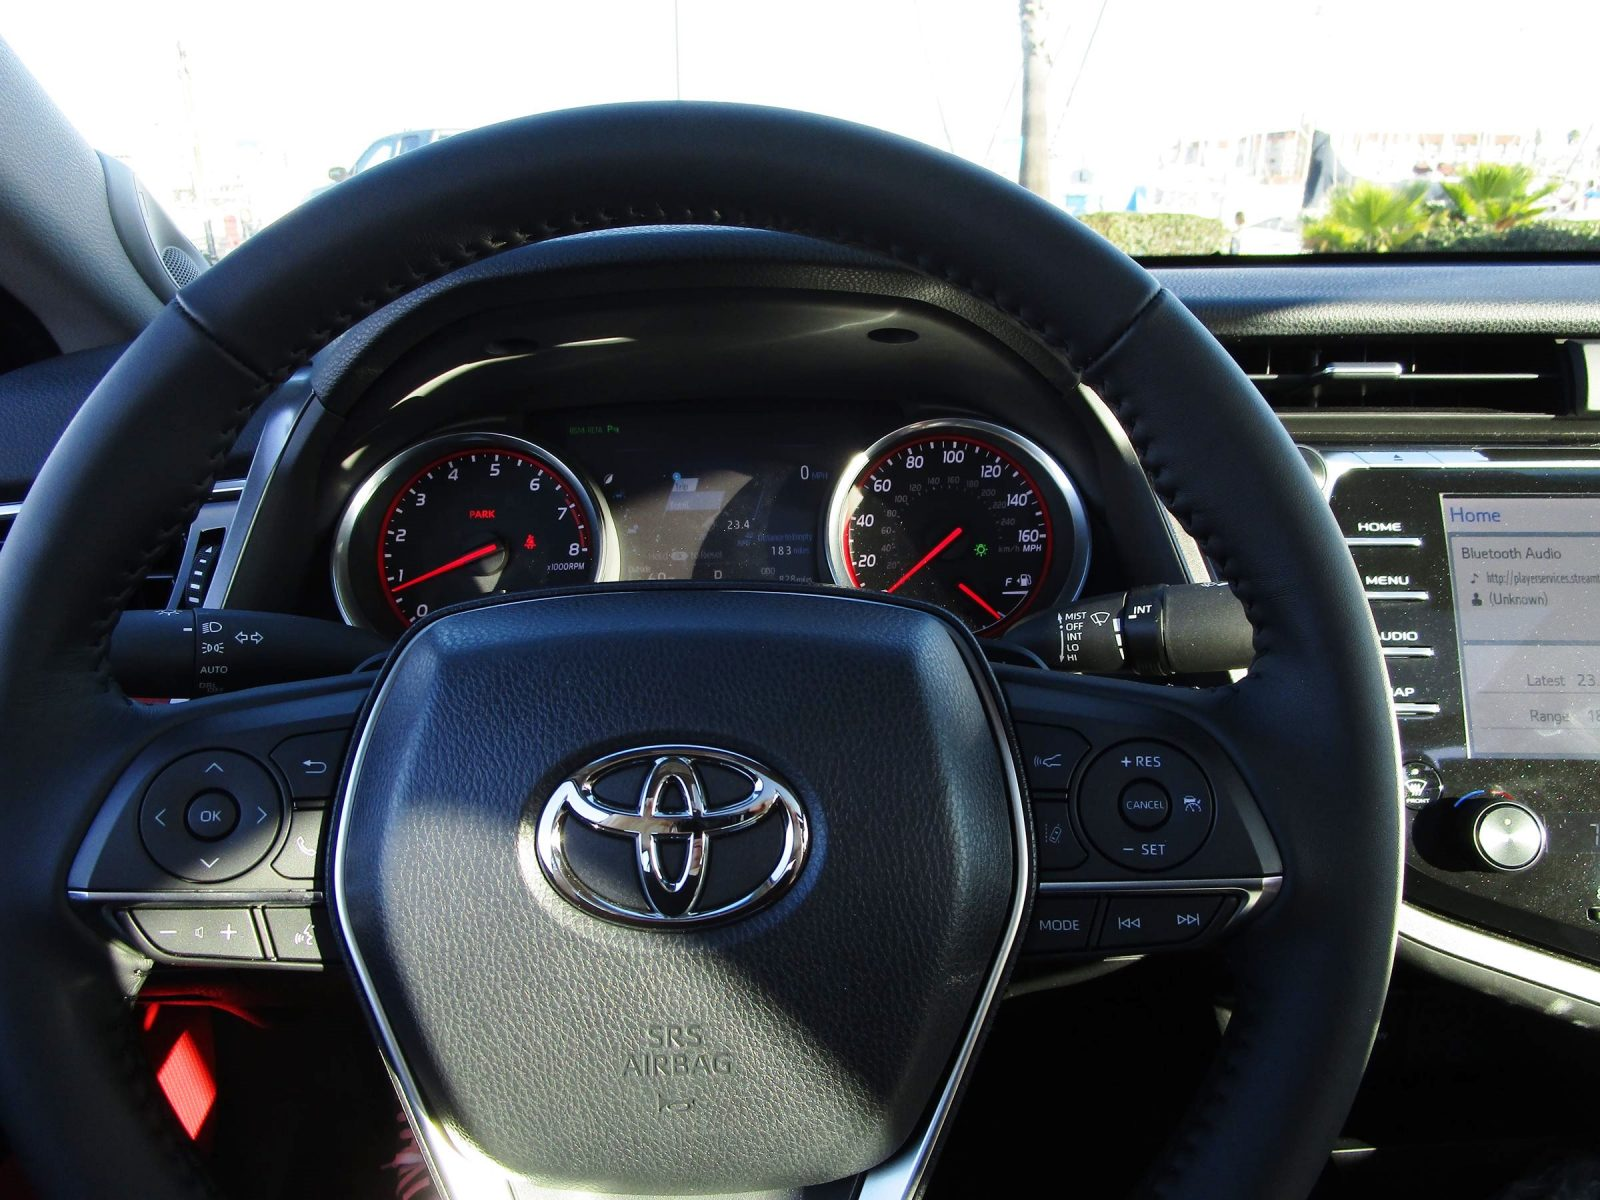 2018 toyota camry xse v6 interior 1 for 2018 toyota camry xse interior